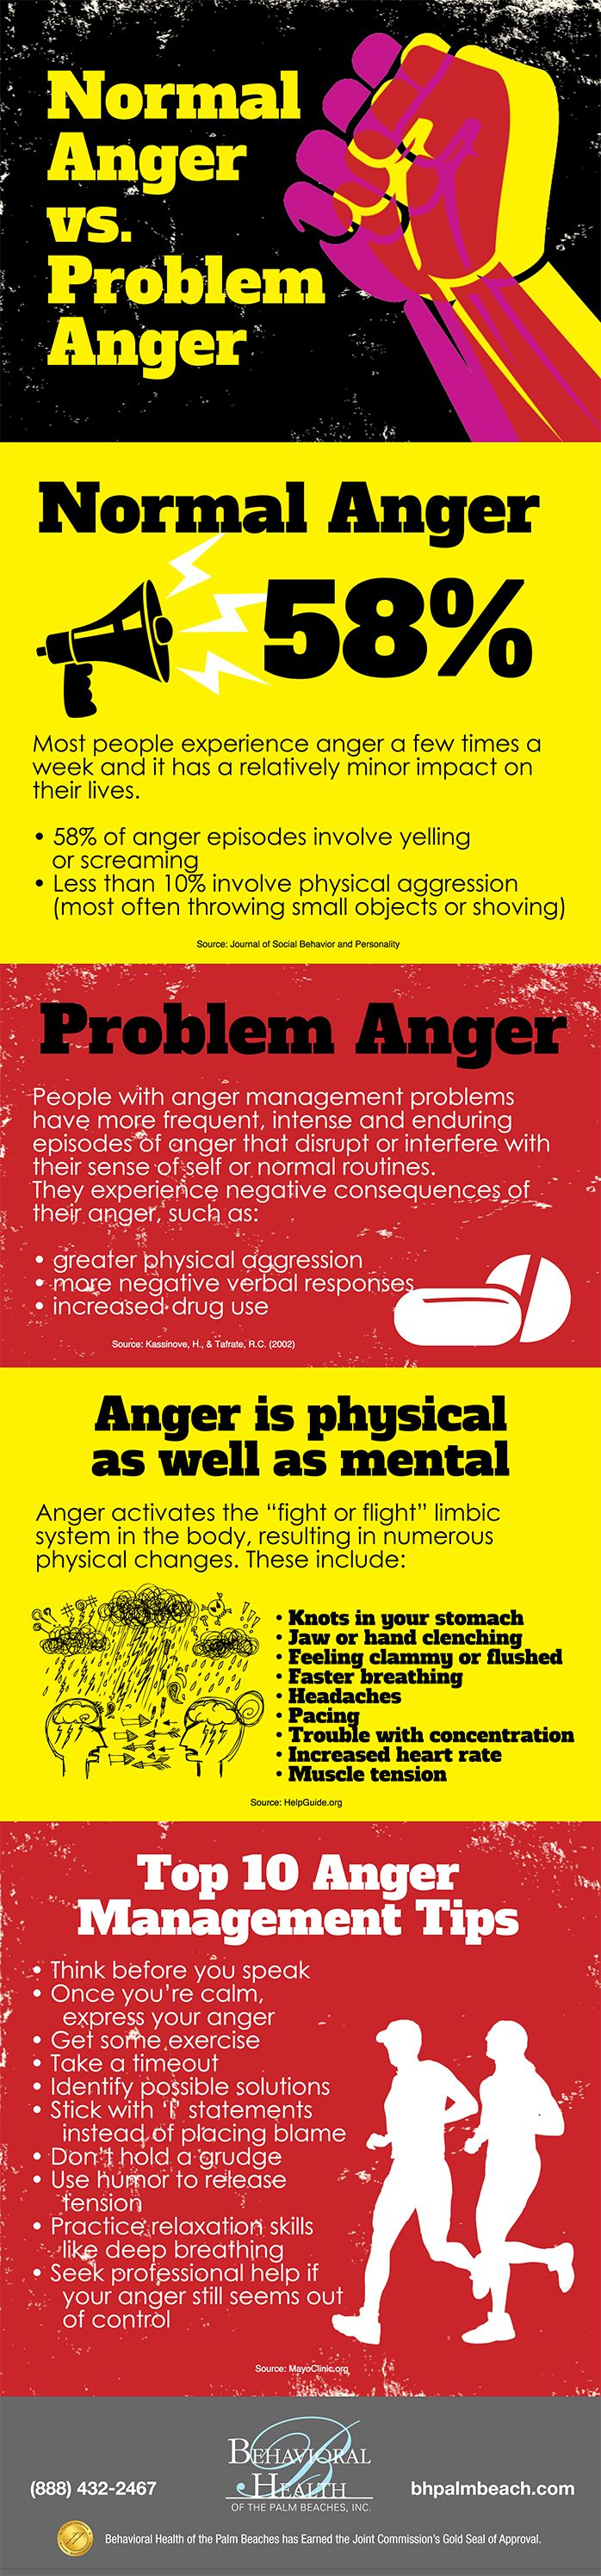 Understanding your anger - what's normal? What's problematic? Anger management